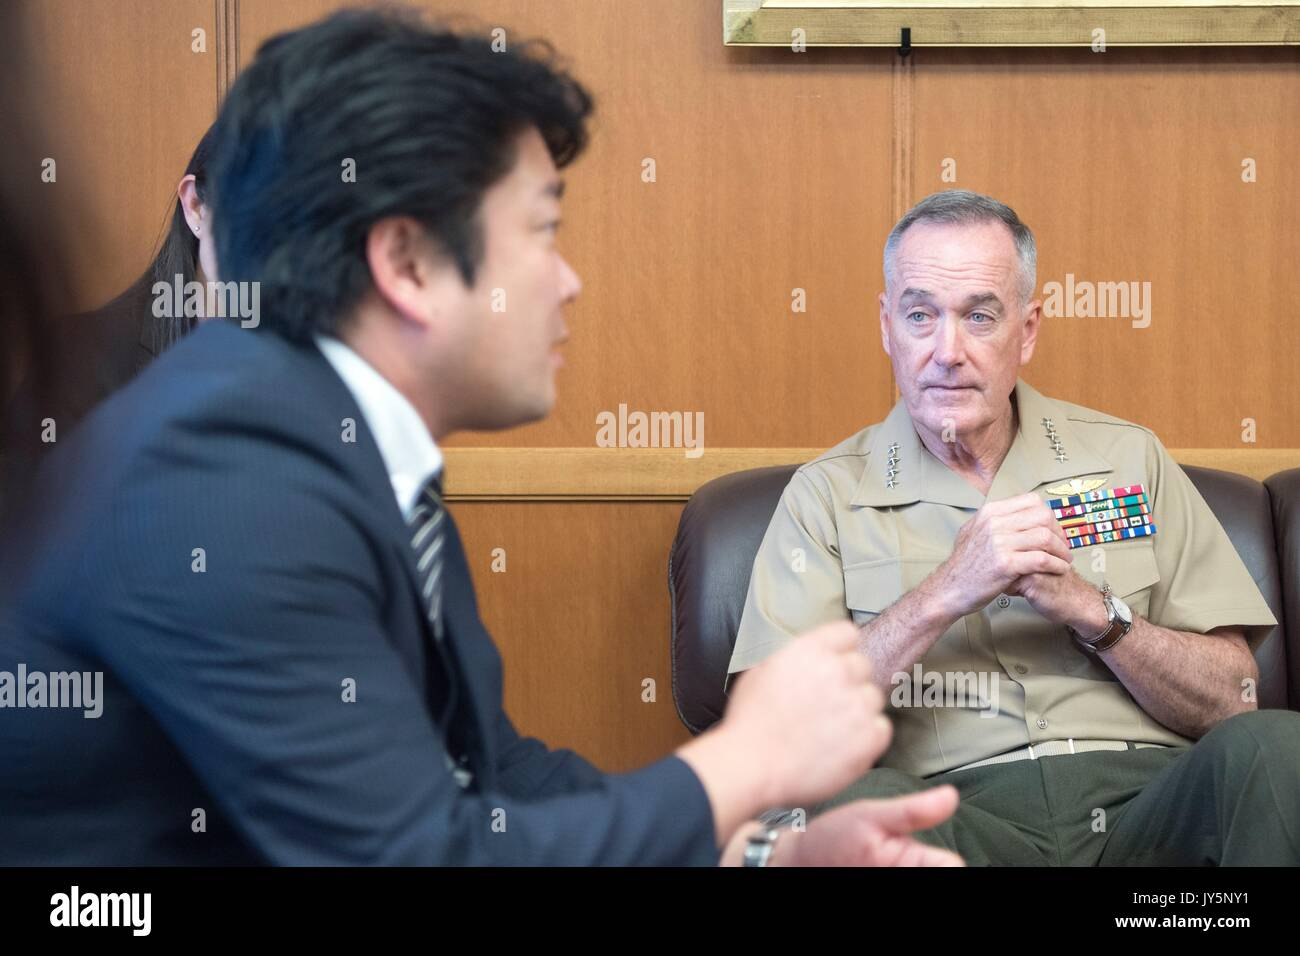 Tokyo, Japan. 18th Aug, 2017. U.S. Chairman of the Joint Chiefs Gen. Joseph Dunford during a bilateral meeting with Stock Photo